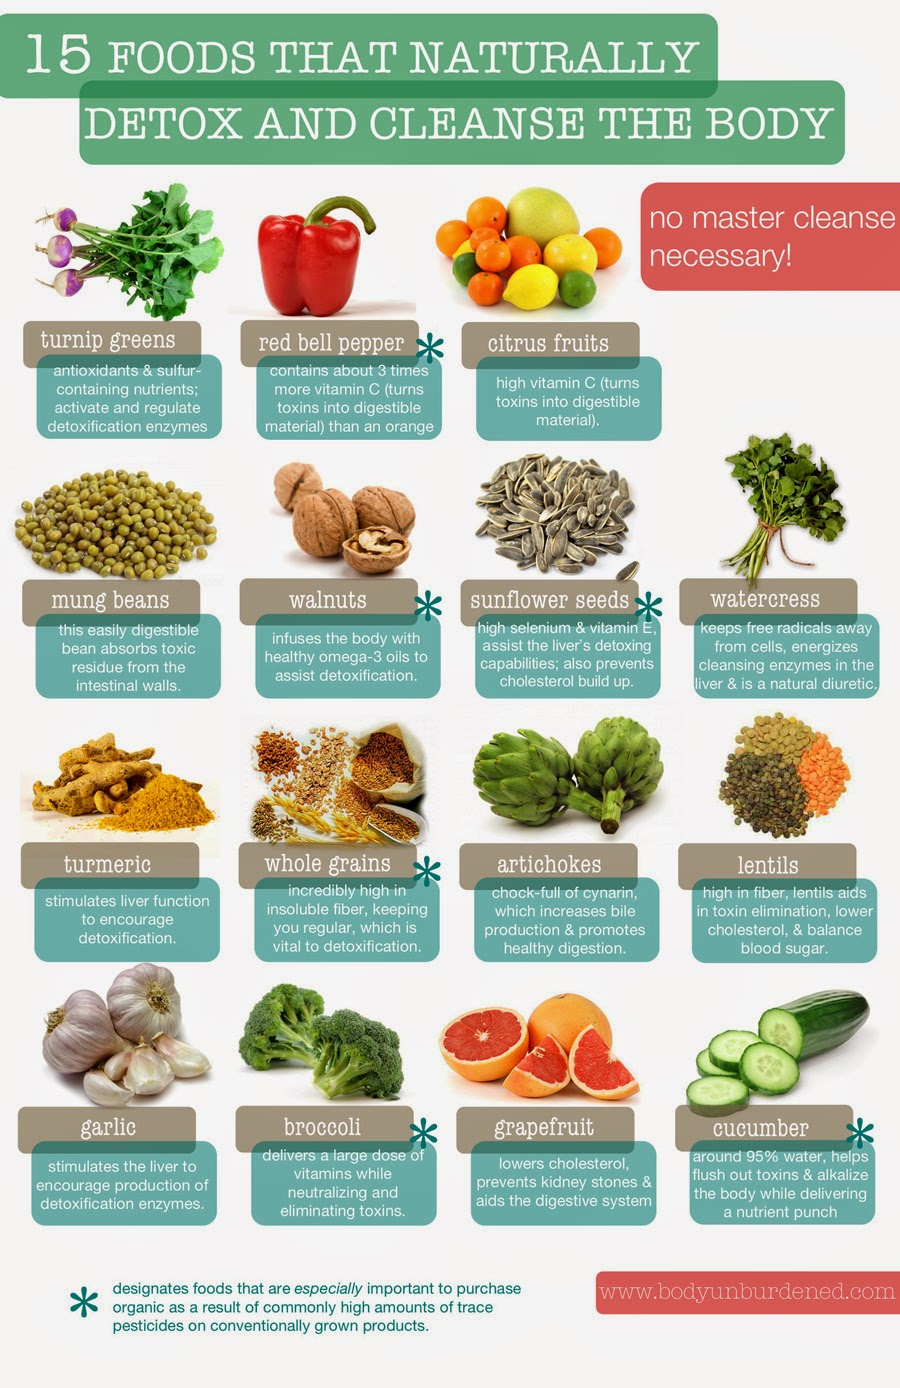 Naturally Detoxifying and Cleansing Foods - Infographic